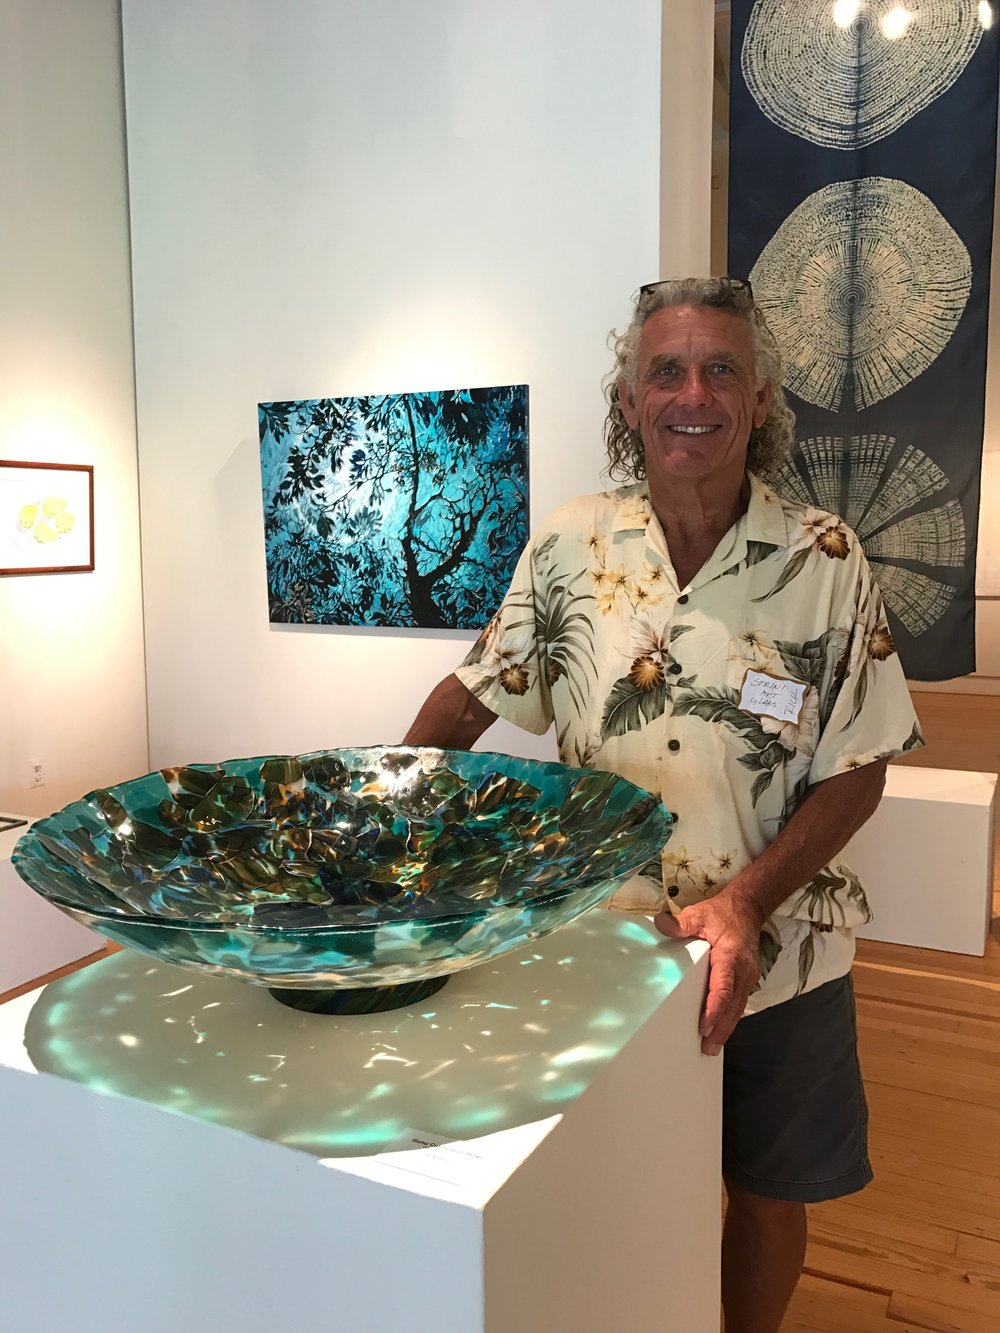 maui crafts guild member with his fused and slumped glass creation also accepted into this yearsArt Maui 2017 show at the Schaefer Gallery at the MACC.